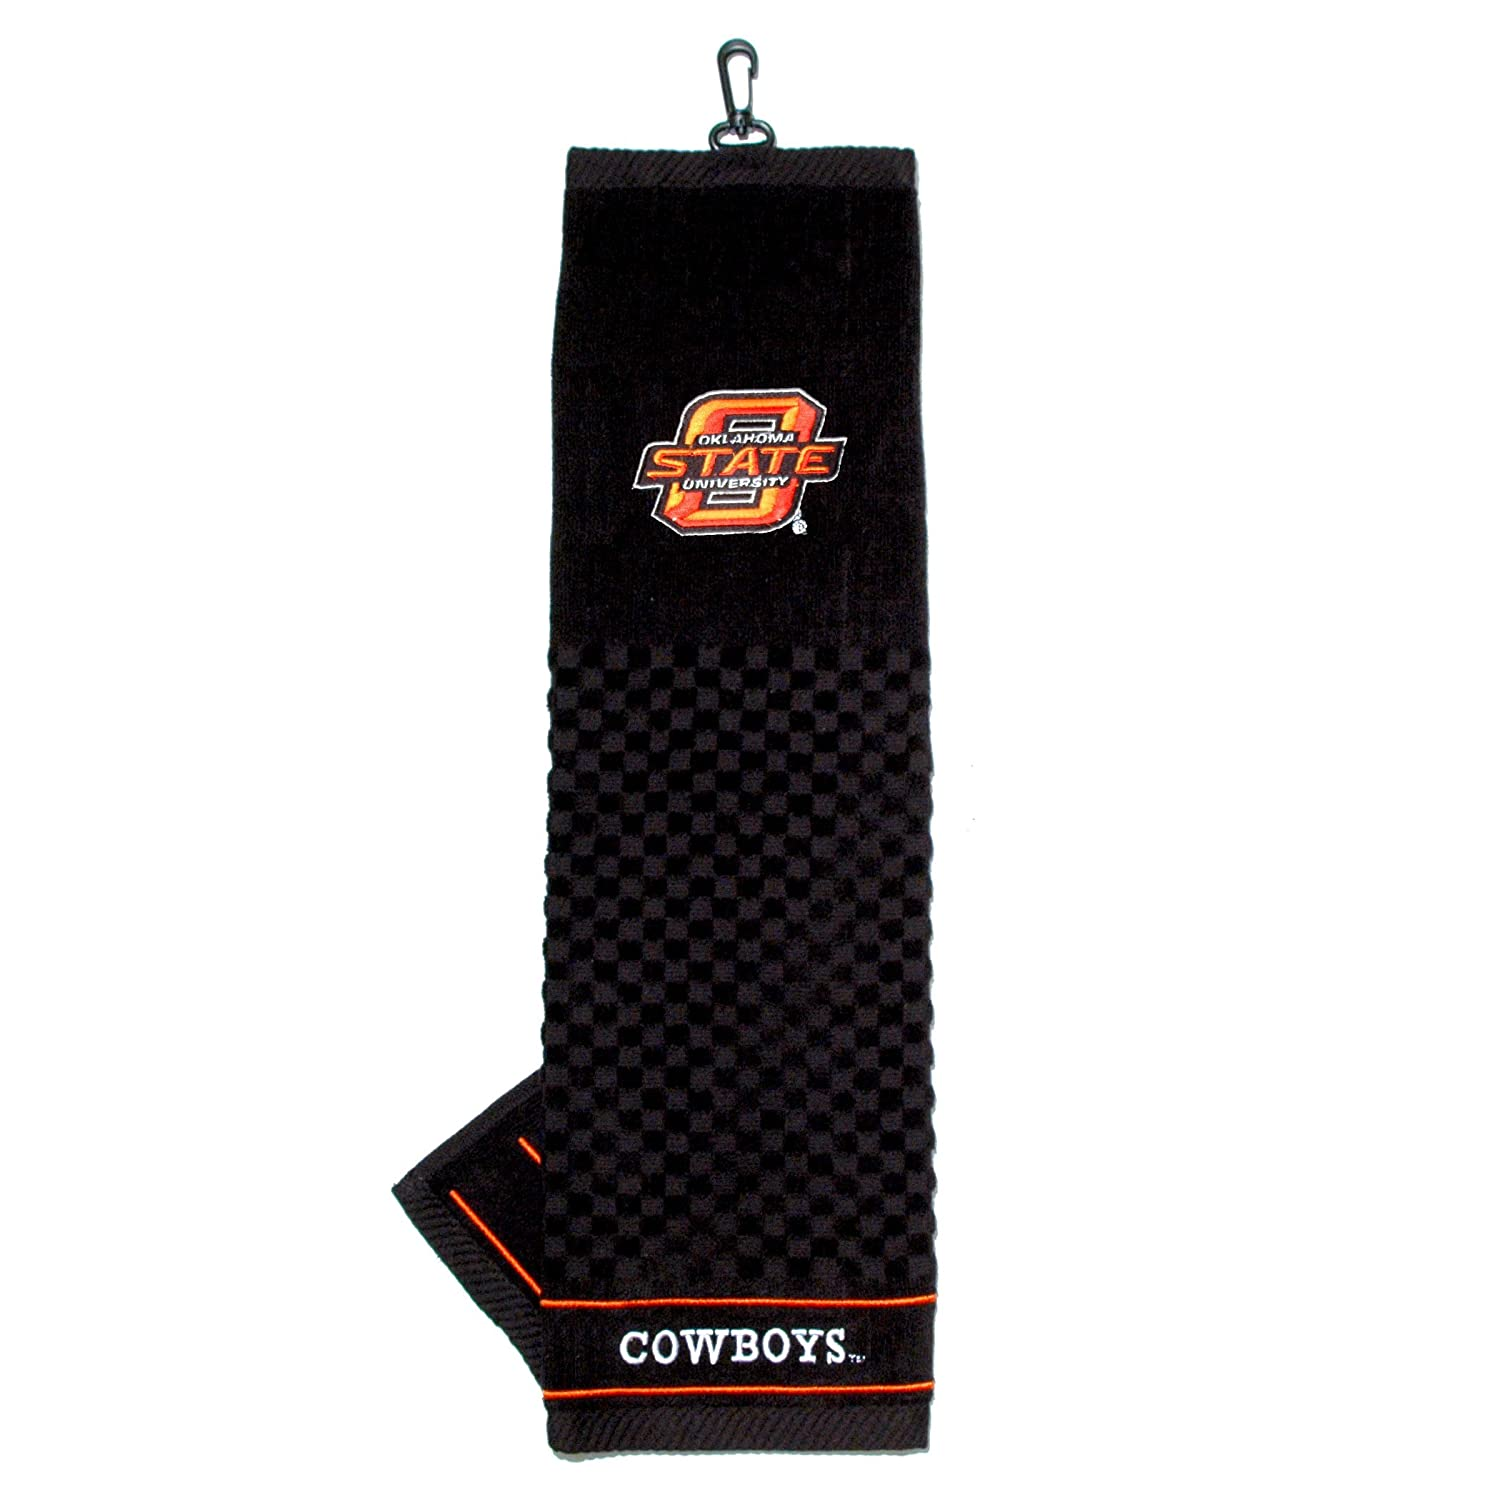 Team Golf NCAA Oklahoma State Cowboys Embroidered Golf Towel Checkered Scrubber Design Embroidered Logo